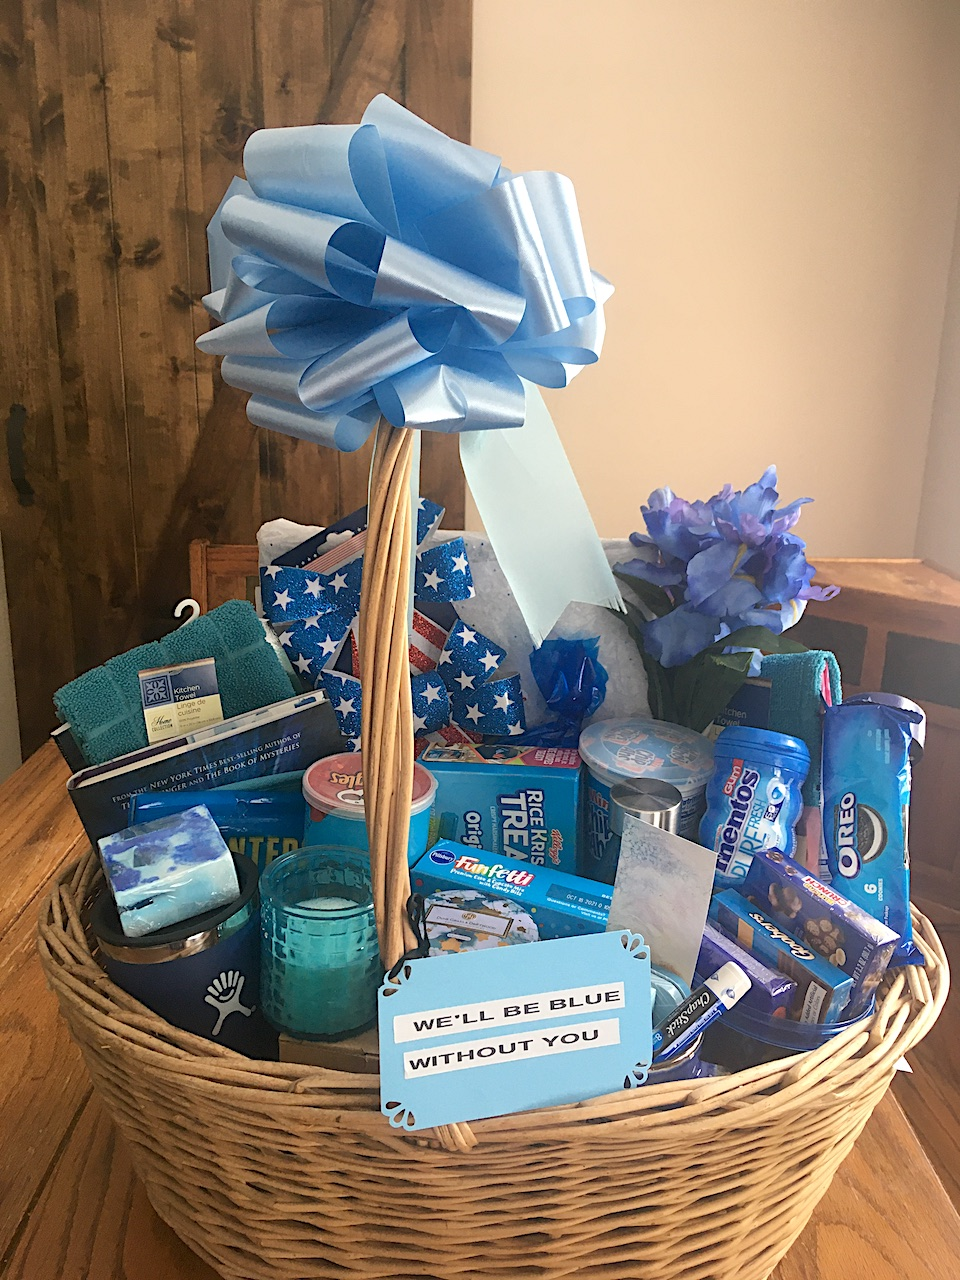 gift basket filled with goodies